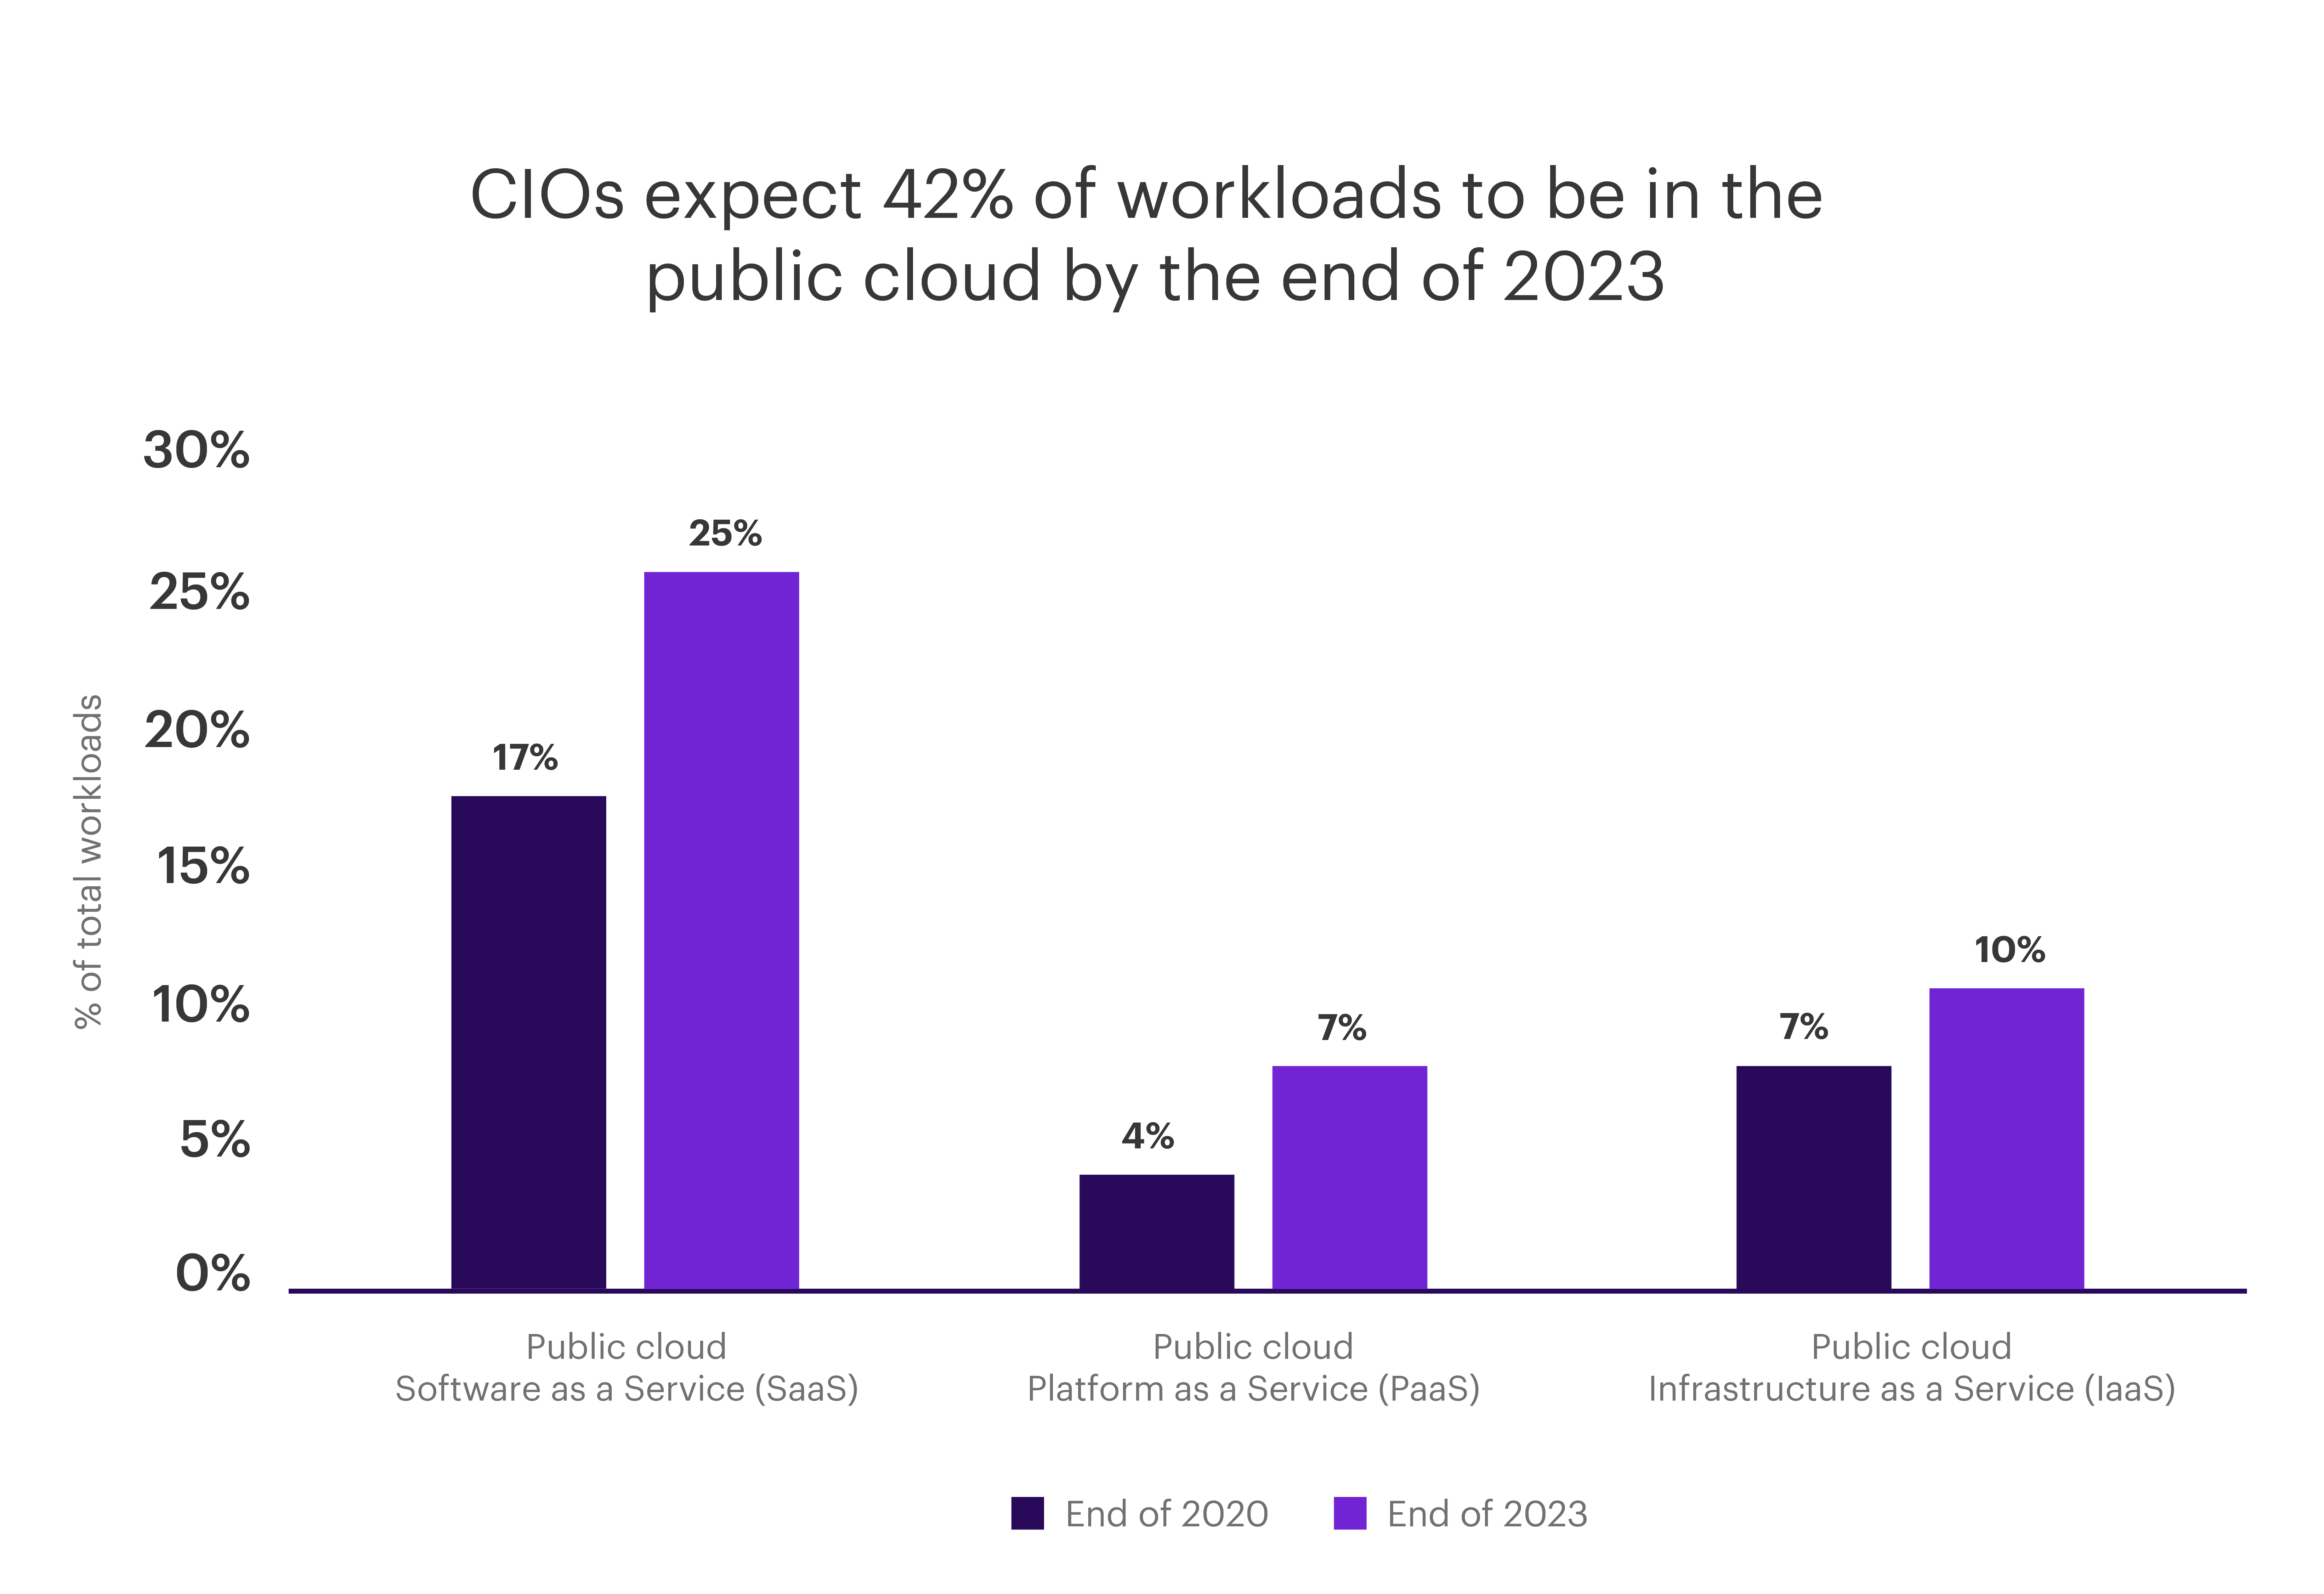 Chart - CIOs expect 42% of workloads to be in the public cloud by the end of 2023.